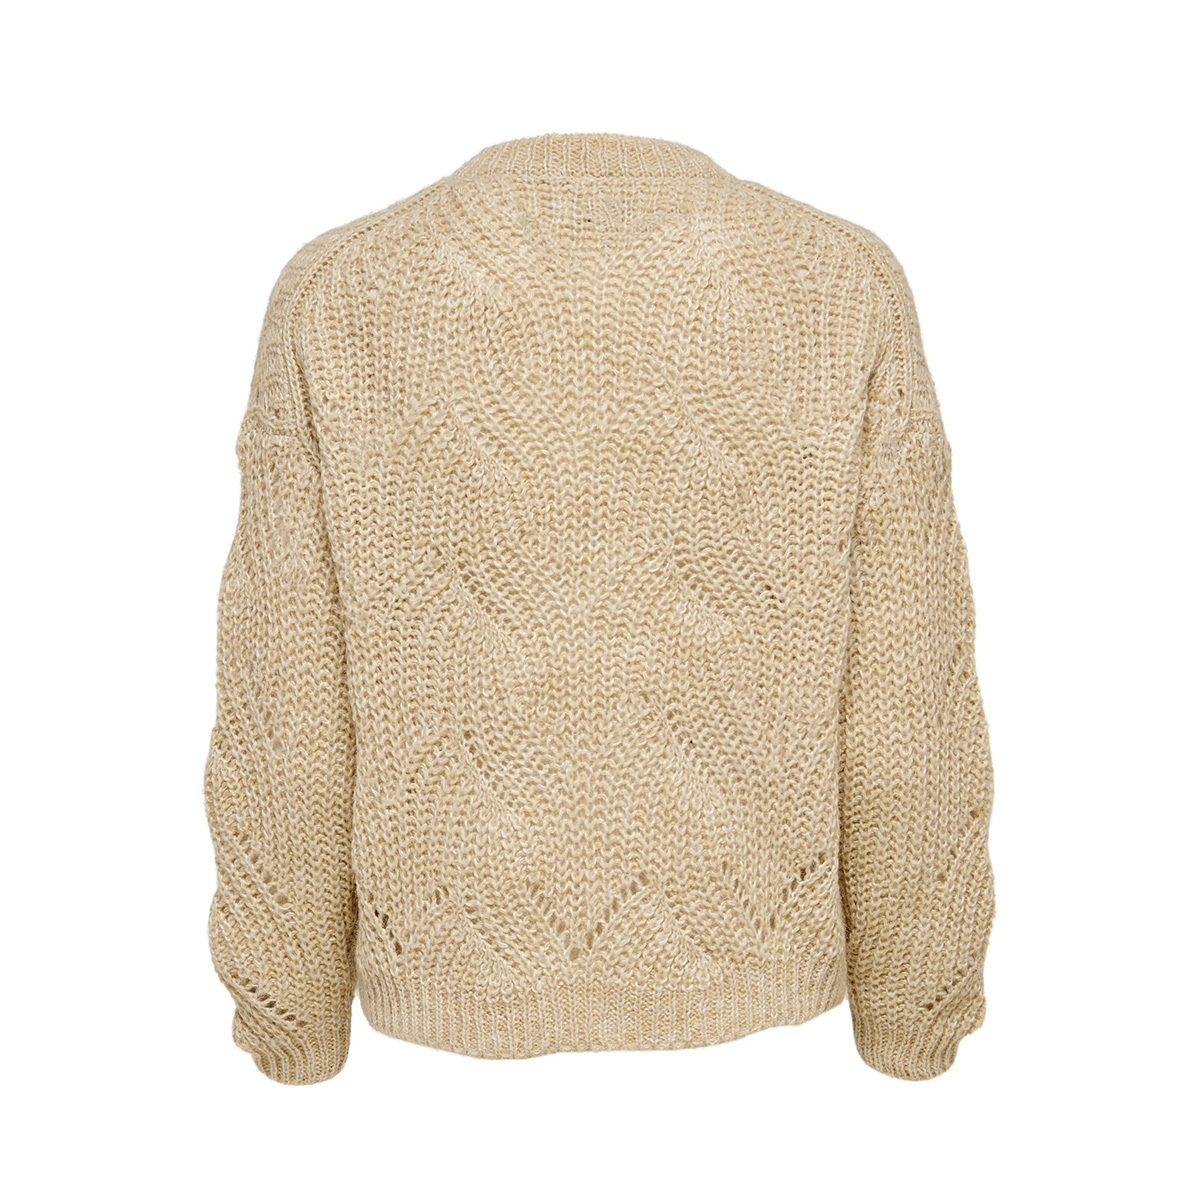 onlhavana l/s pullover knt noos 15187600 only trui pumice stone